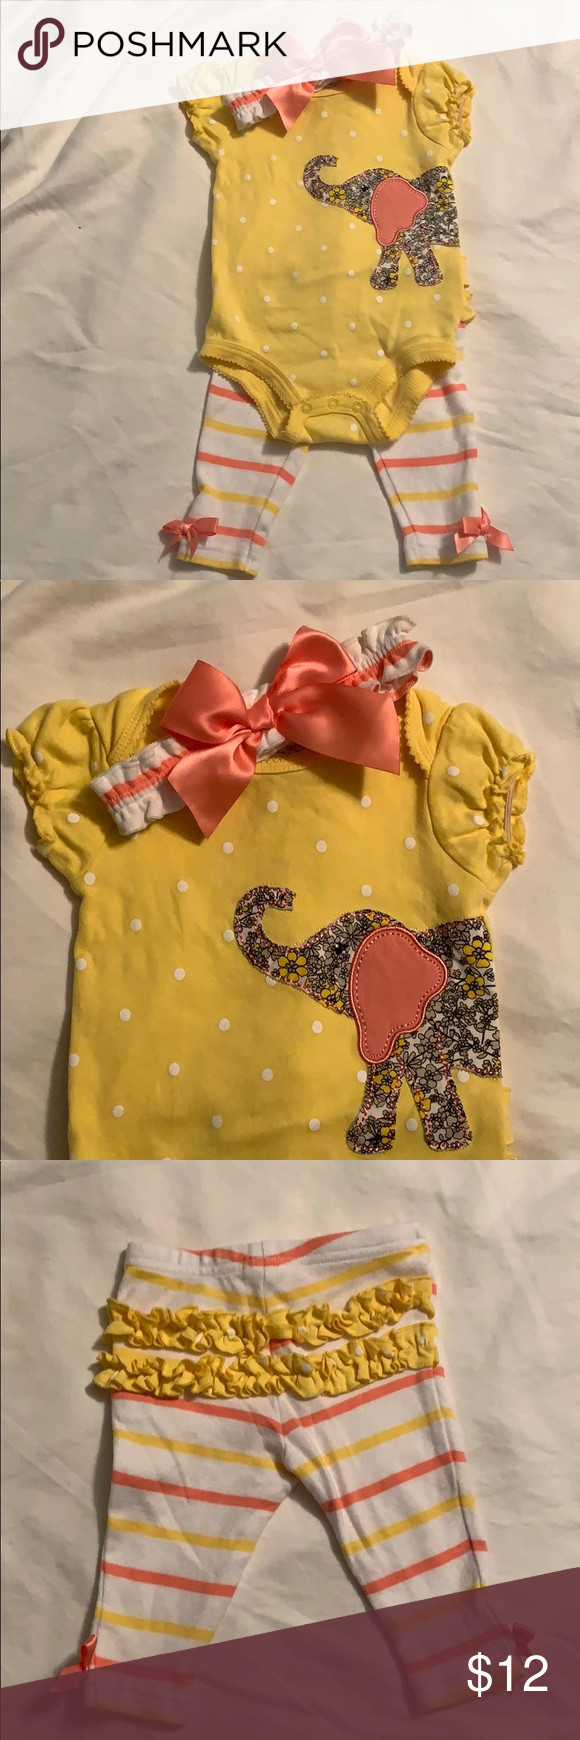 Elephant matching 2 piece set w/ headband 6 month Yellow and pink matching set from first impressions. Great condition. One of my faves. Bundle to save Matching Sets #wfaves Elephant matching 2 piece set w/ headband 6 month Yellow and pink matching set from first impressions. Great condition. One of my faves. Bundle to save Matching Sets #wfaves